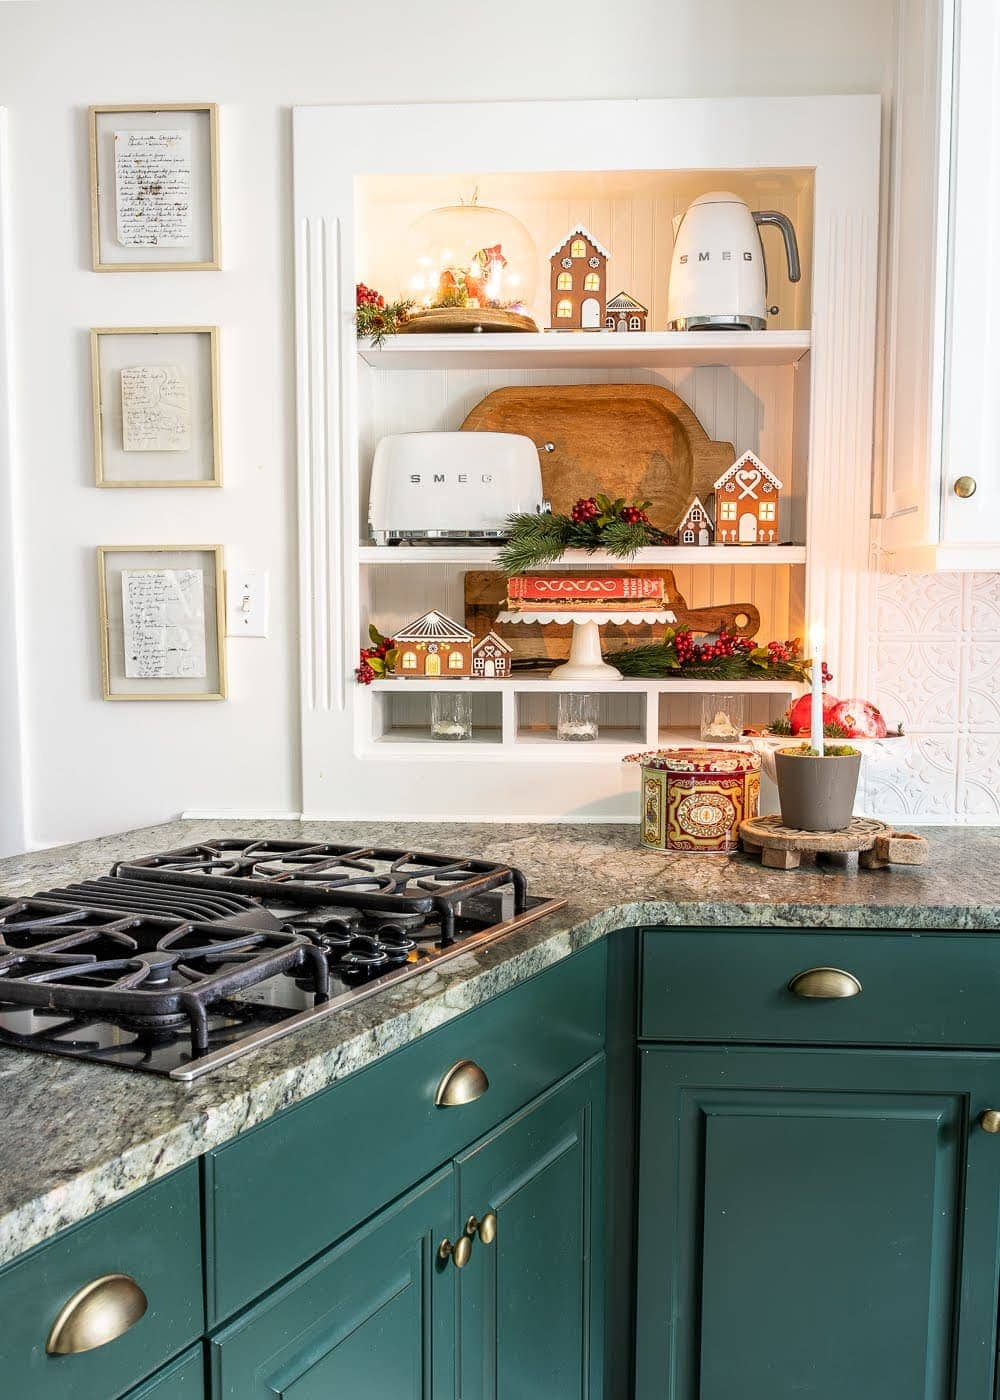 Christmas decor ideas | Christmas kitchen shelves and framed handwritten recipes from past generations